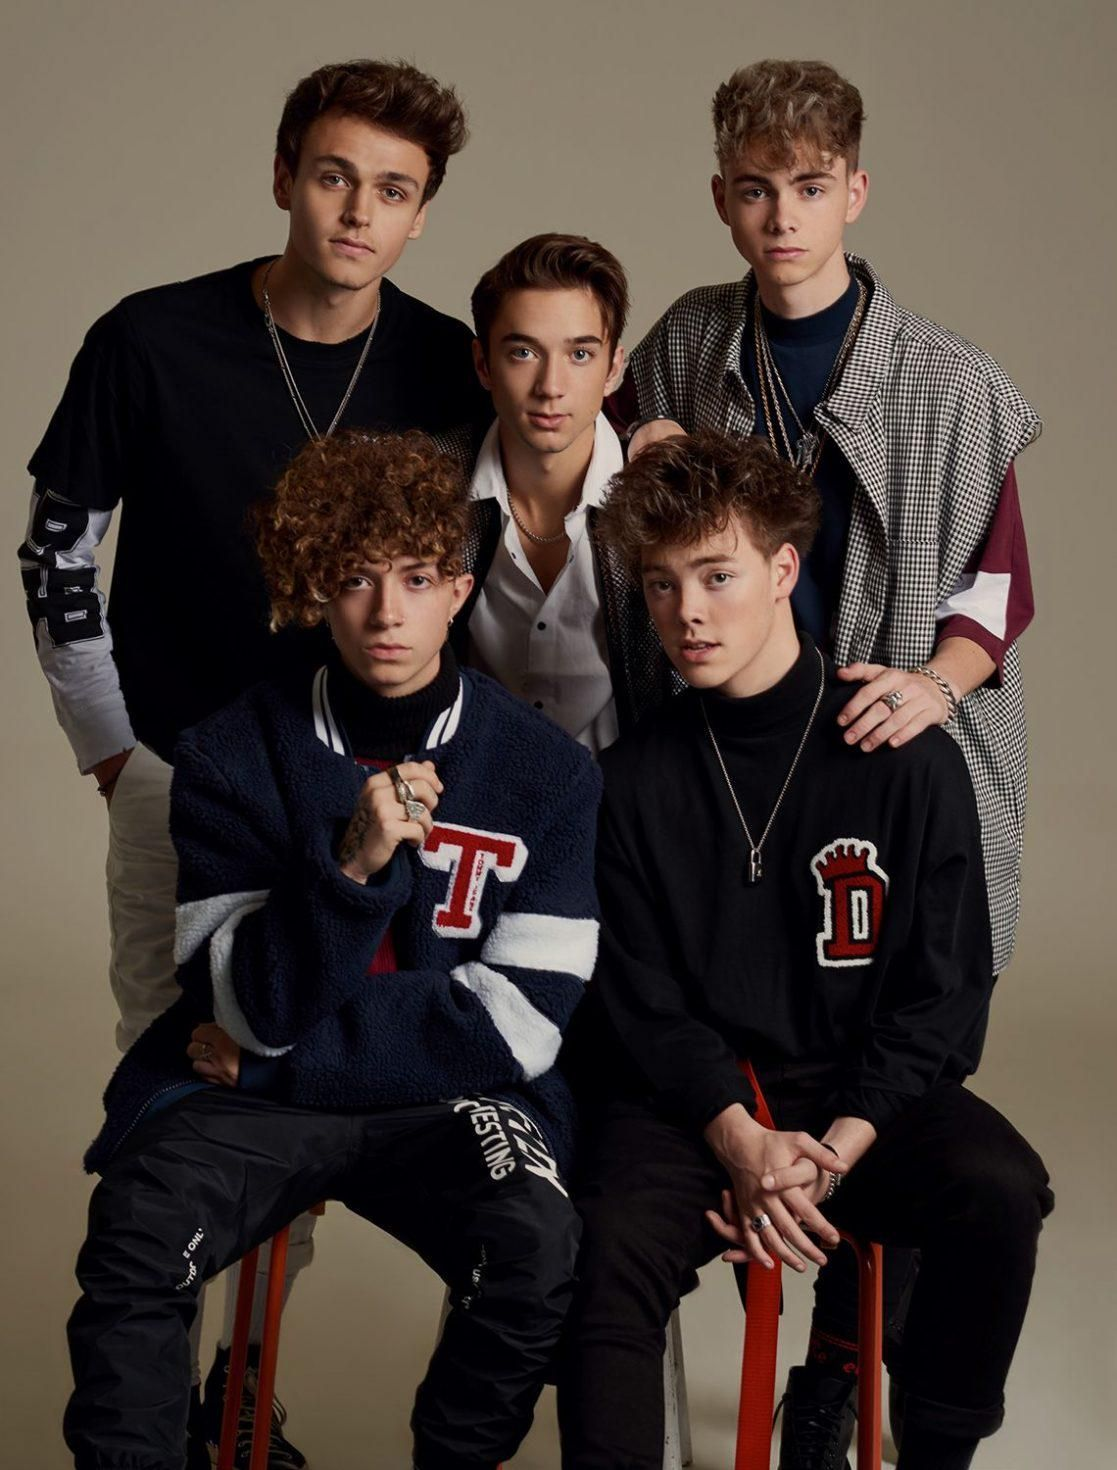 Unbelievable - Why Don't We - LETRAS.MUS.BR